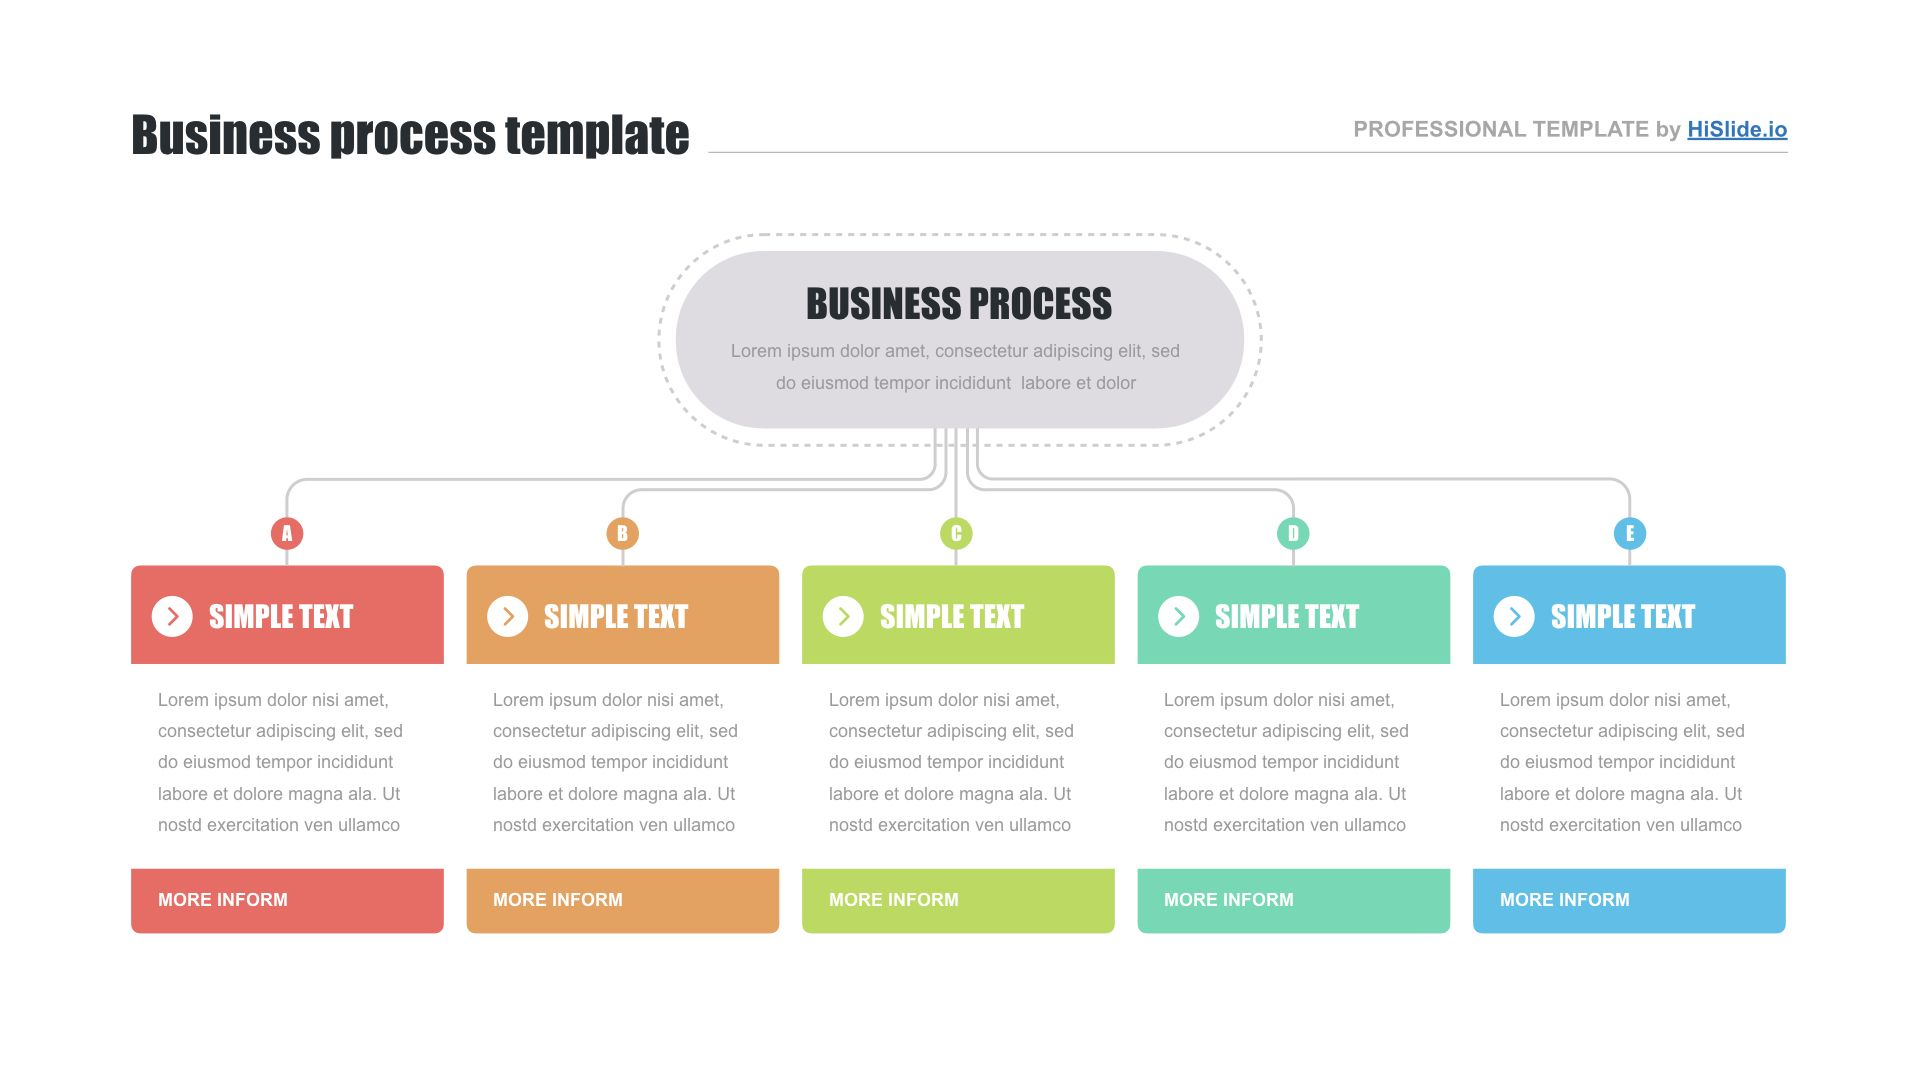 Business process PPT presentation Free Download Now